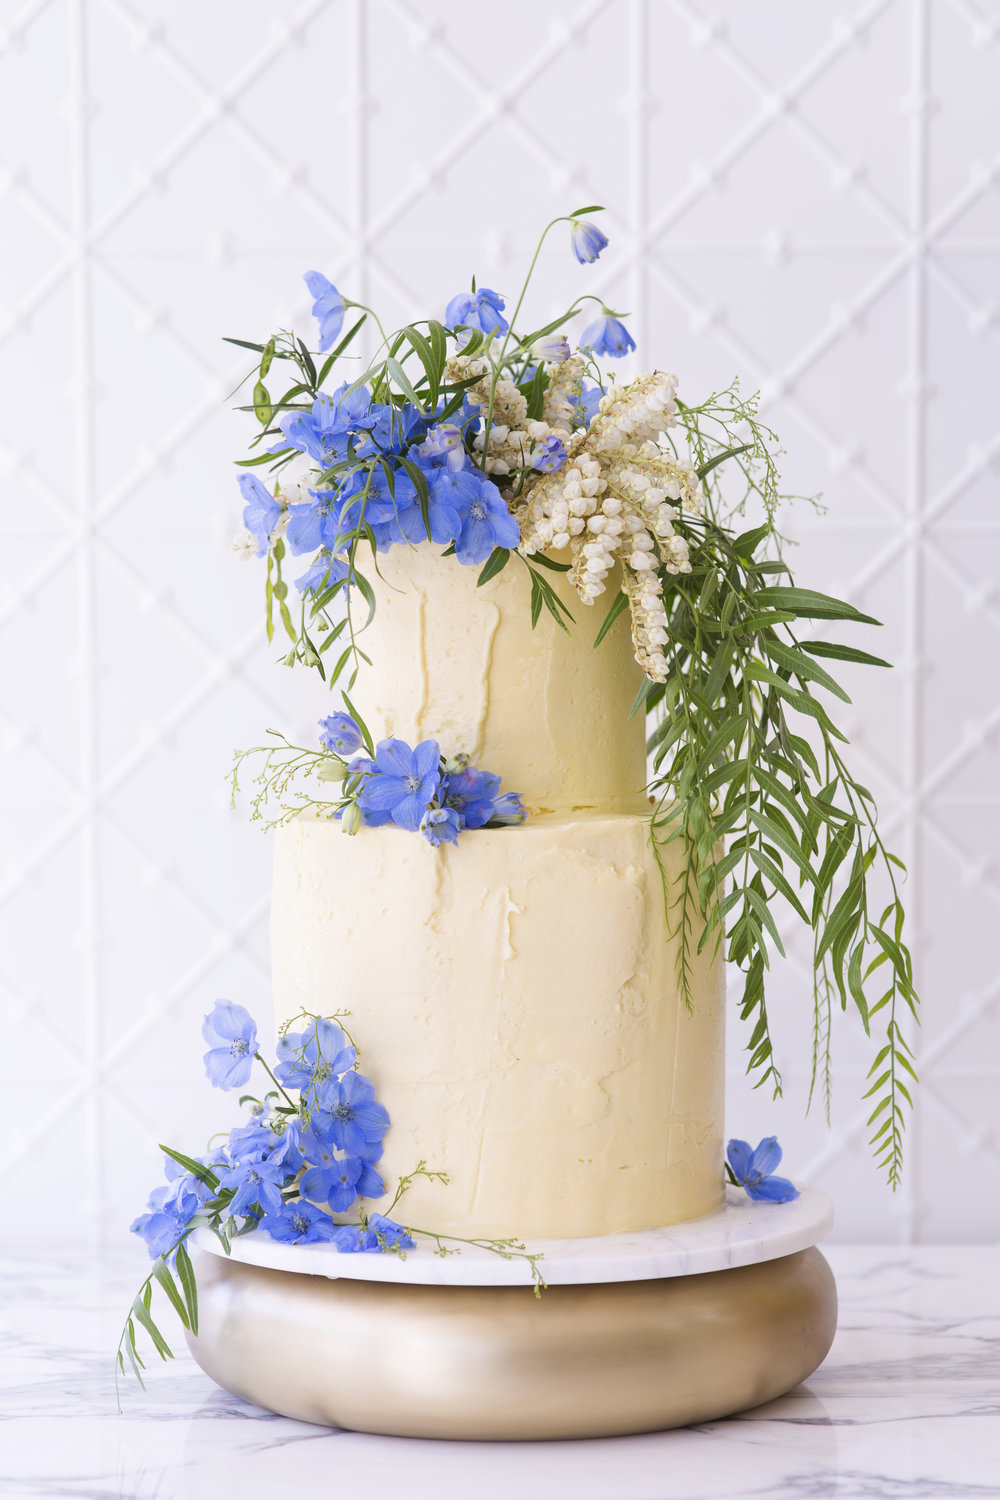 BLOODWOOD BOTANICA X Faye Cahill | Something blue wedding cake